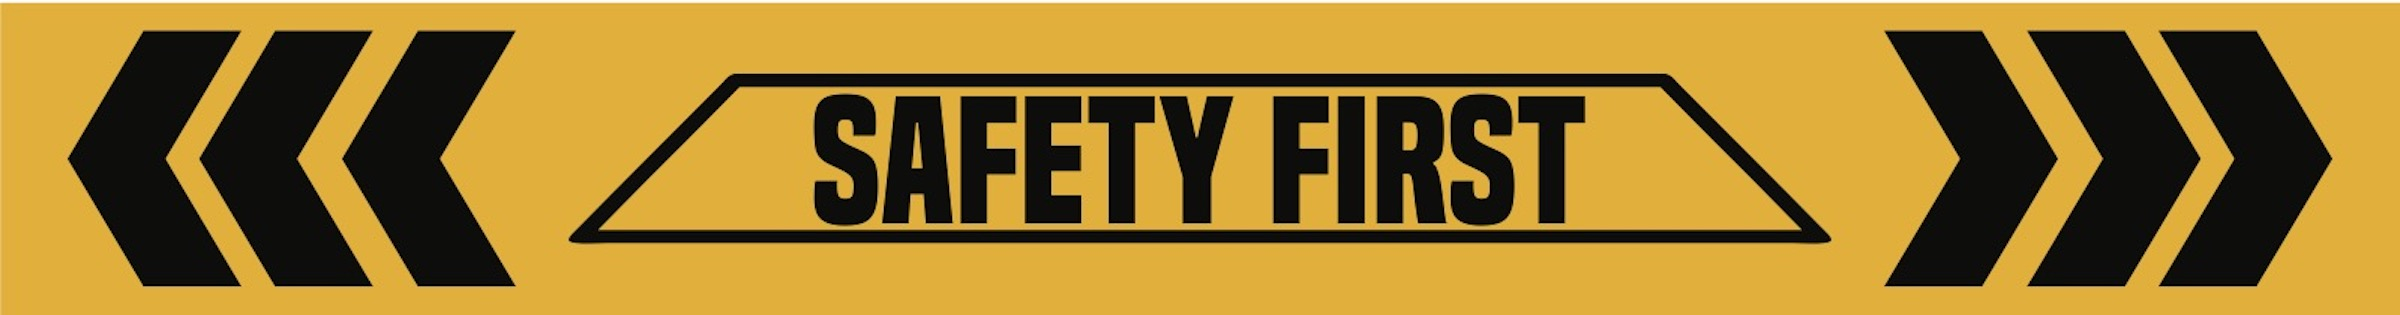 Picture of a yellow and black safety banner that says safety first.